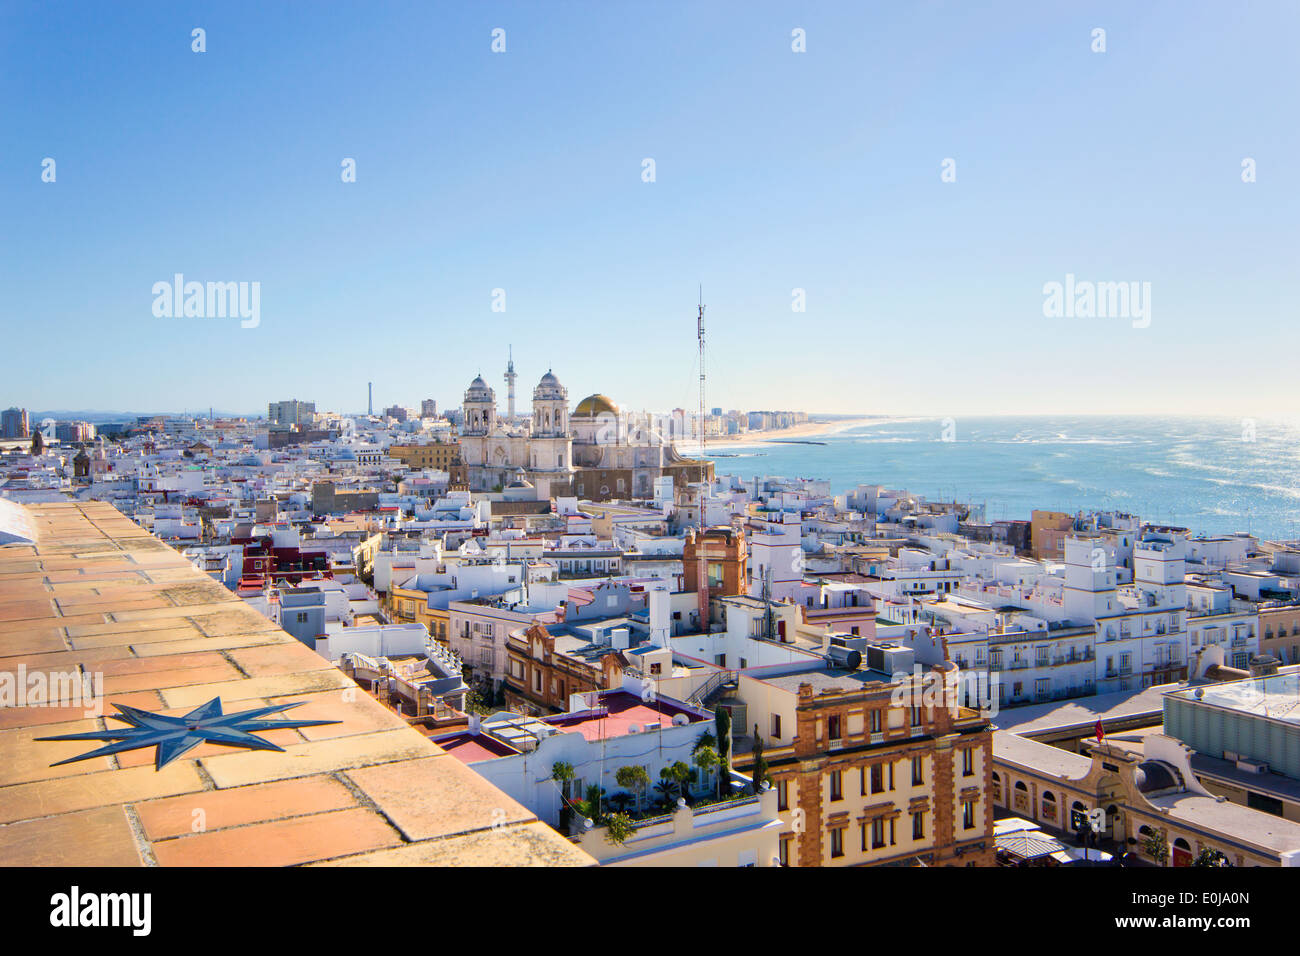 Cadiz, Costa de la Luz, Andalucia, Spain. Overall view of the city from La Torre Tavira, or The Tavira Tower. - Stock Image